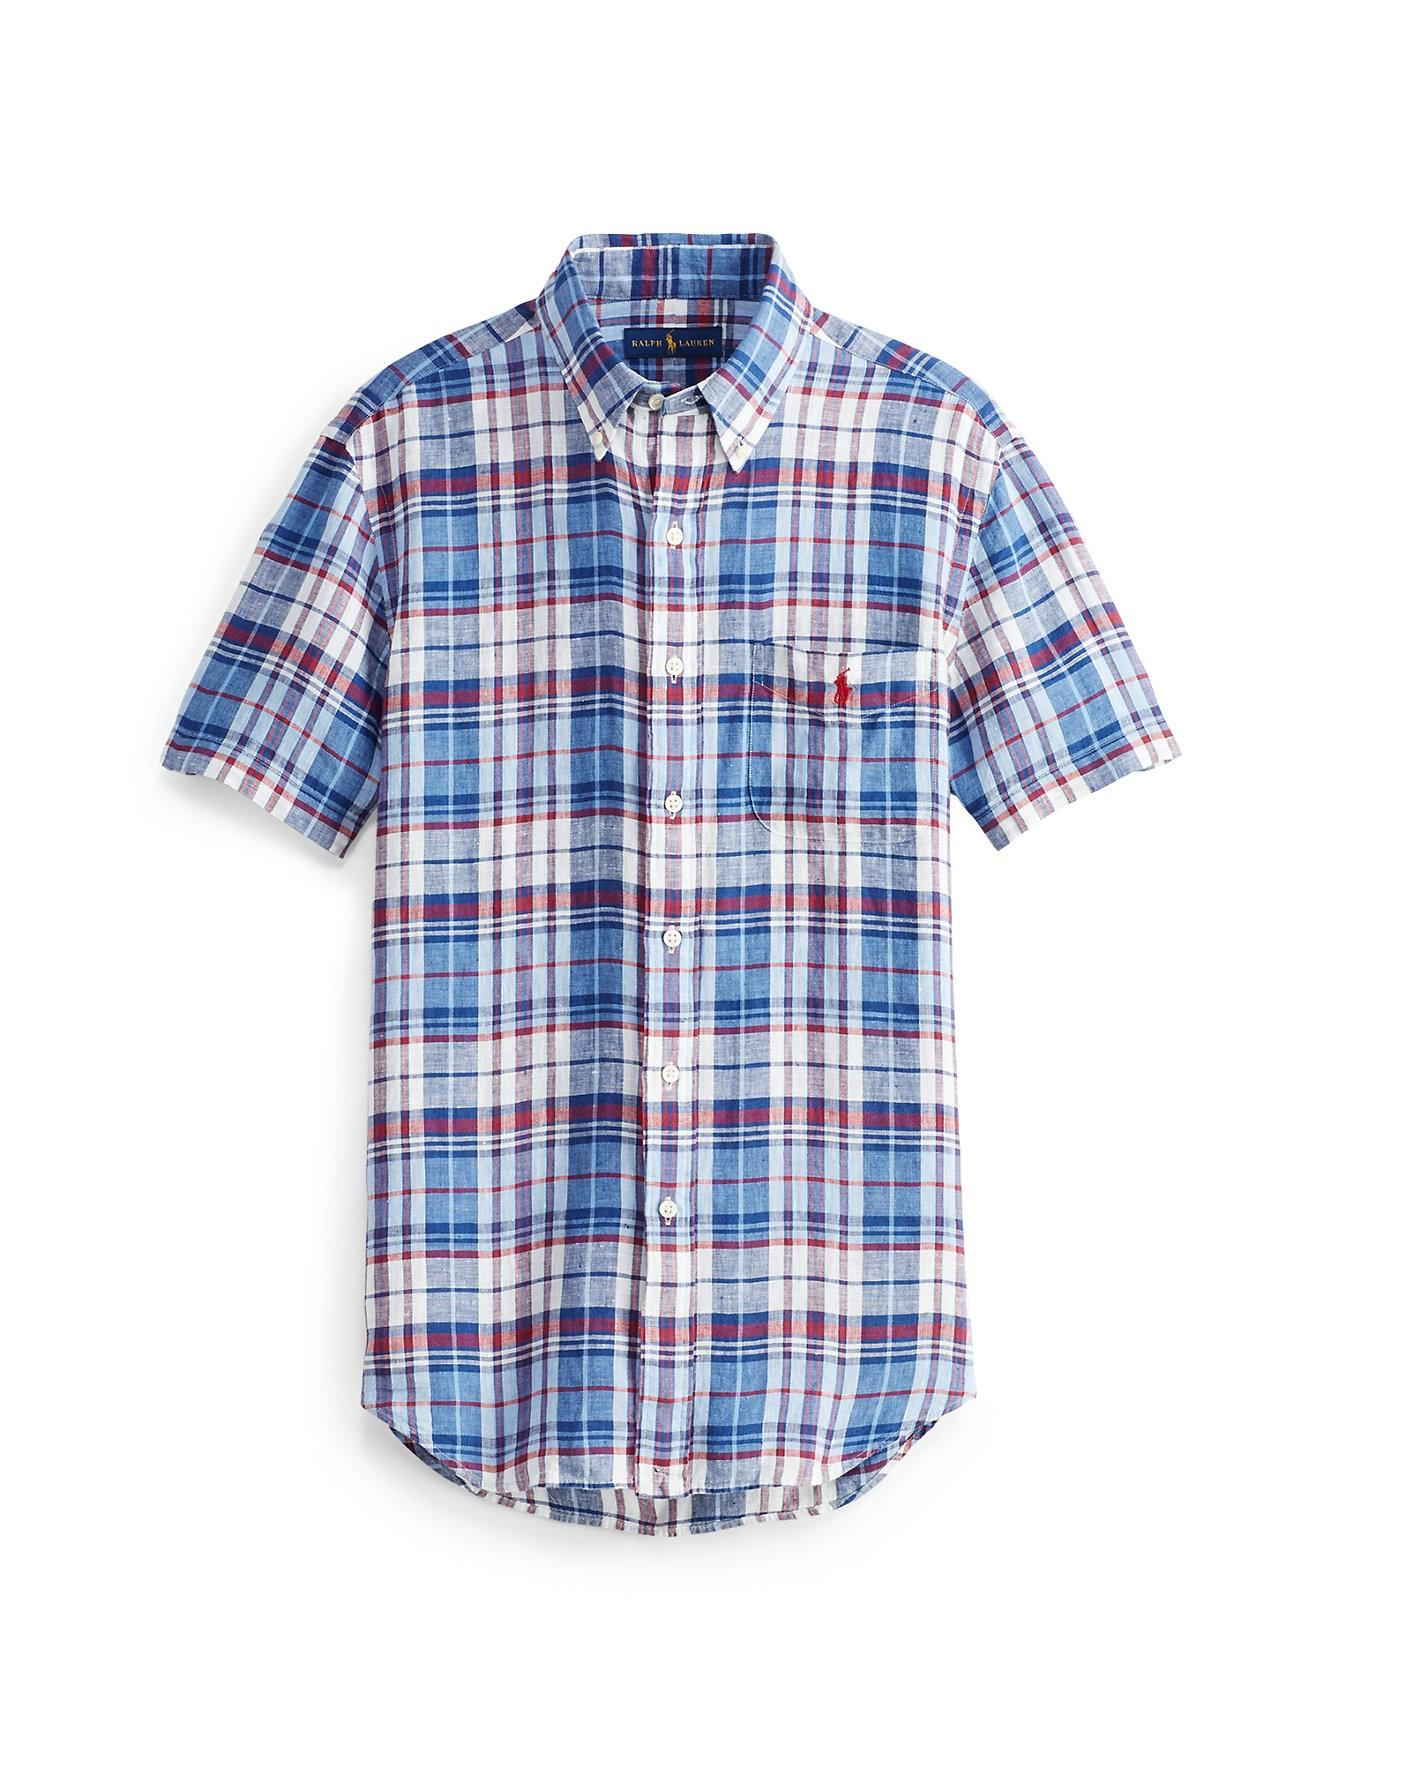 Ralph Lauren Polo  Classic Fit Plaid Linen Shirt In Blue/red Multi